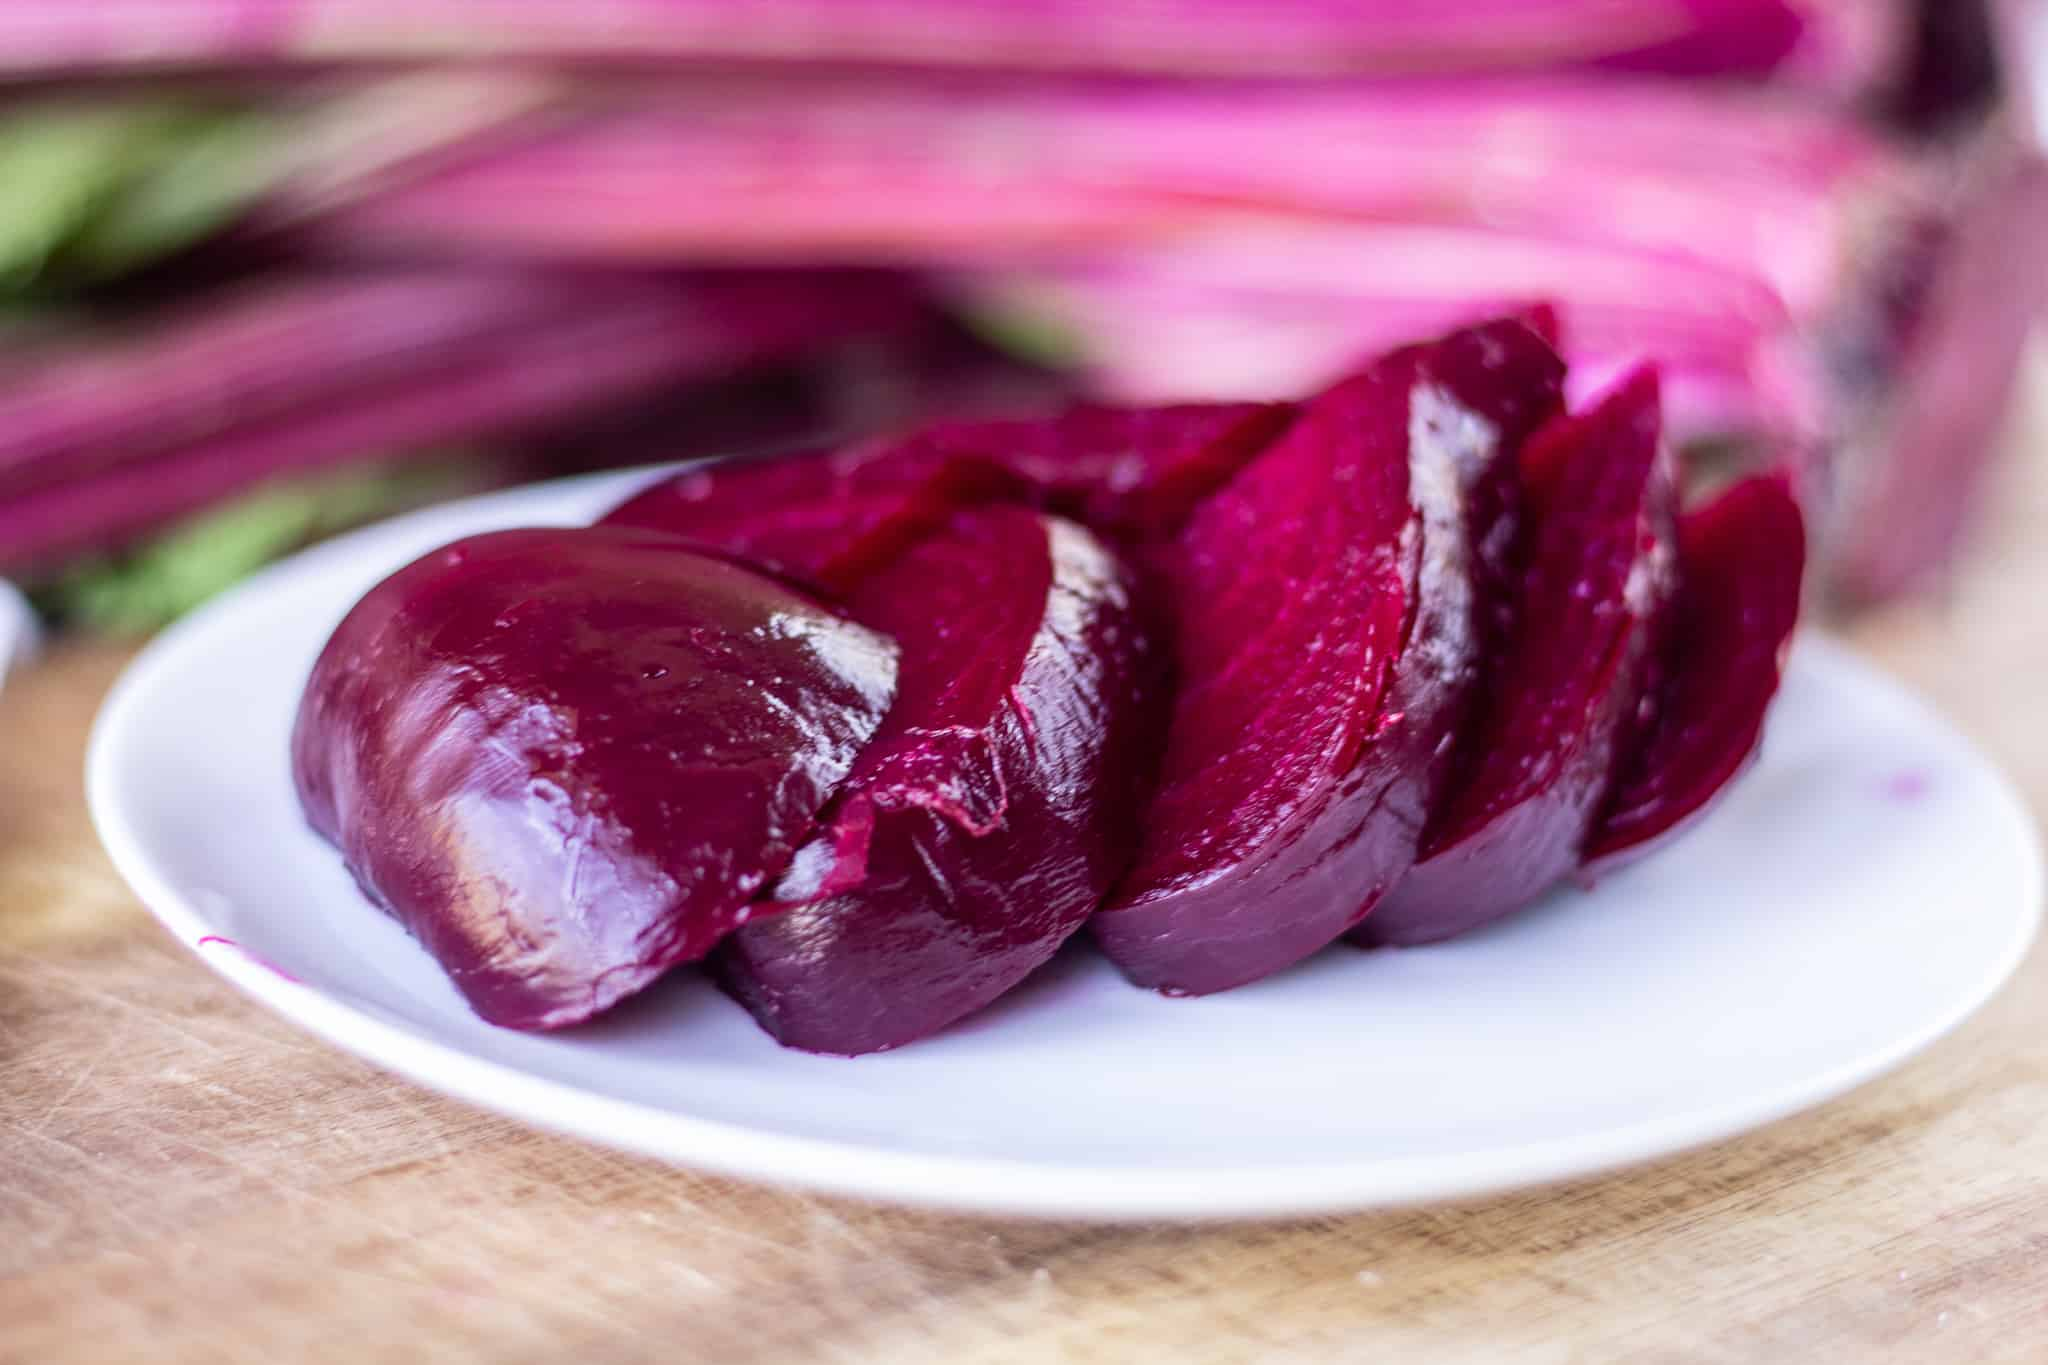 roasted and sliced beets on plate